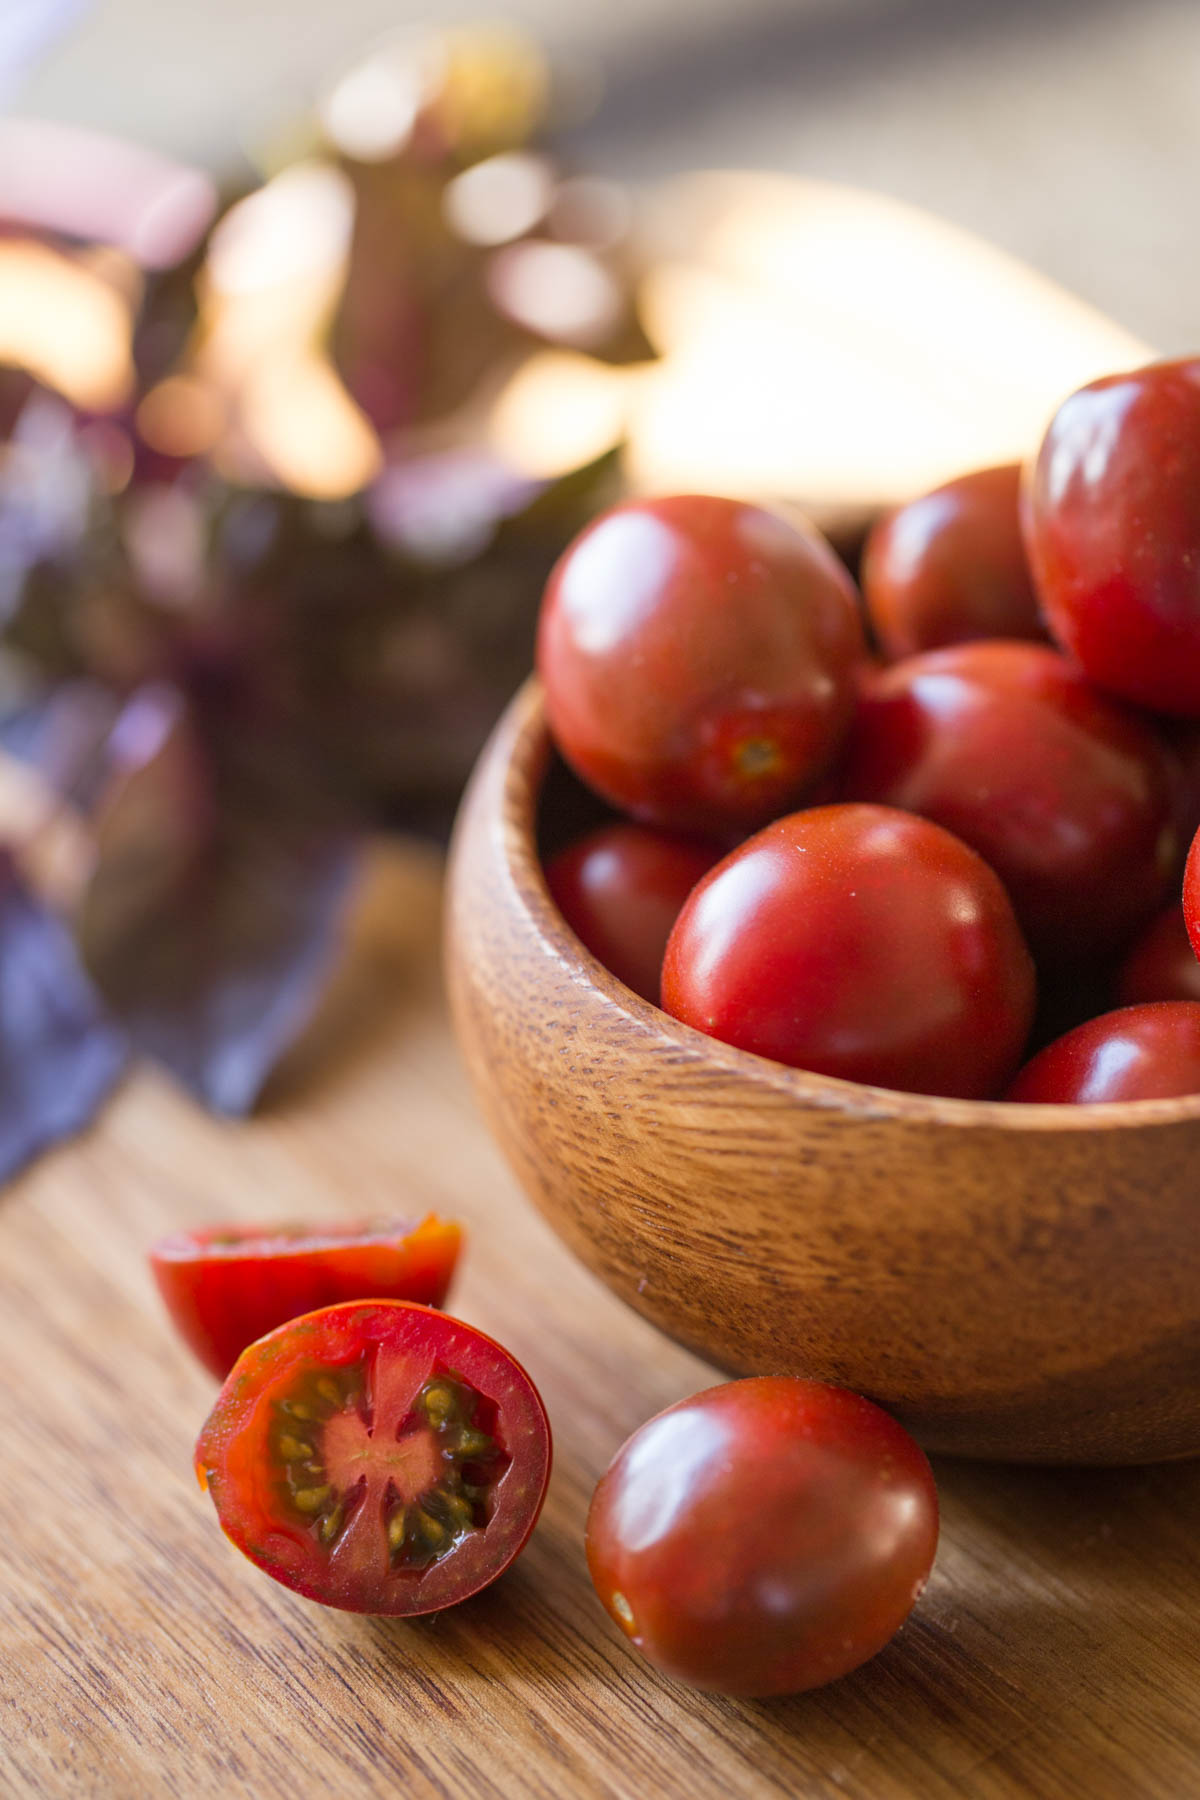 A small wood bowl of grape tomatoes, with a few tomatoes sitting next to the bowl.